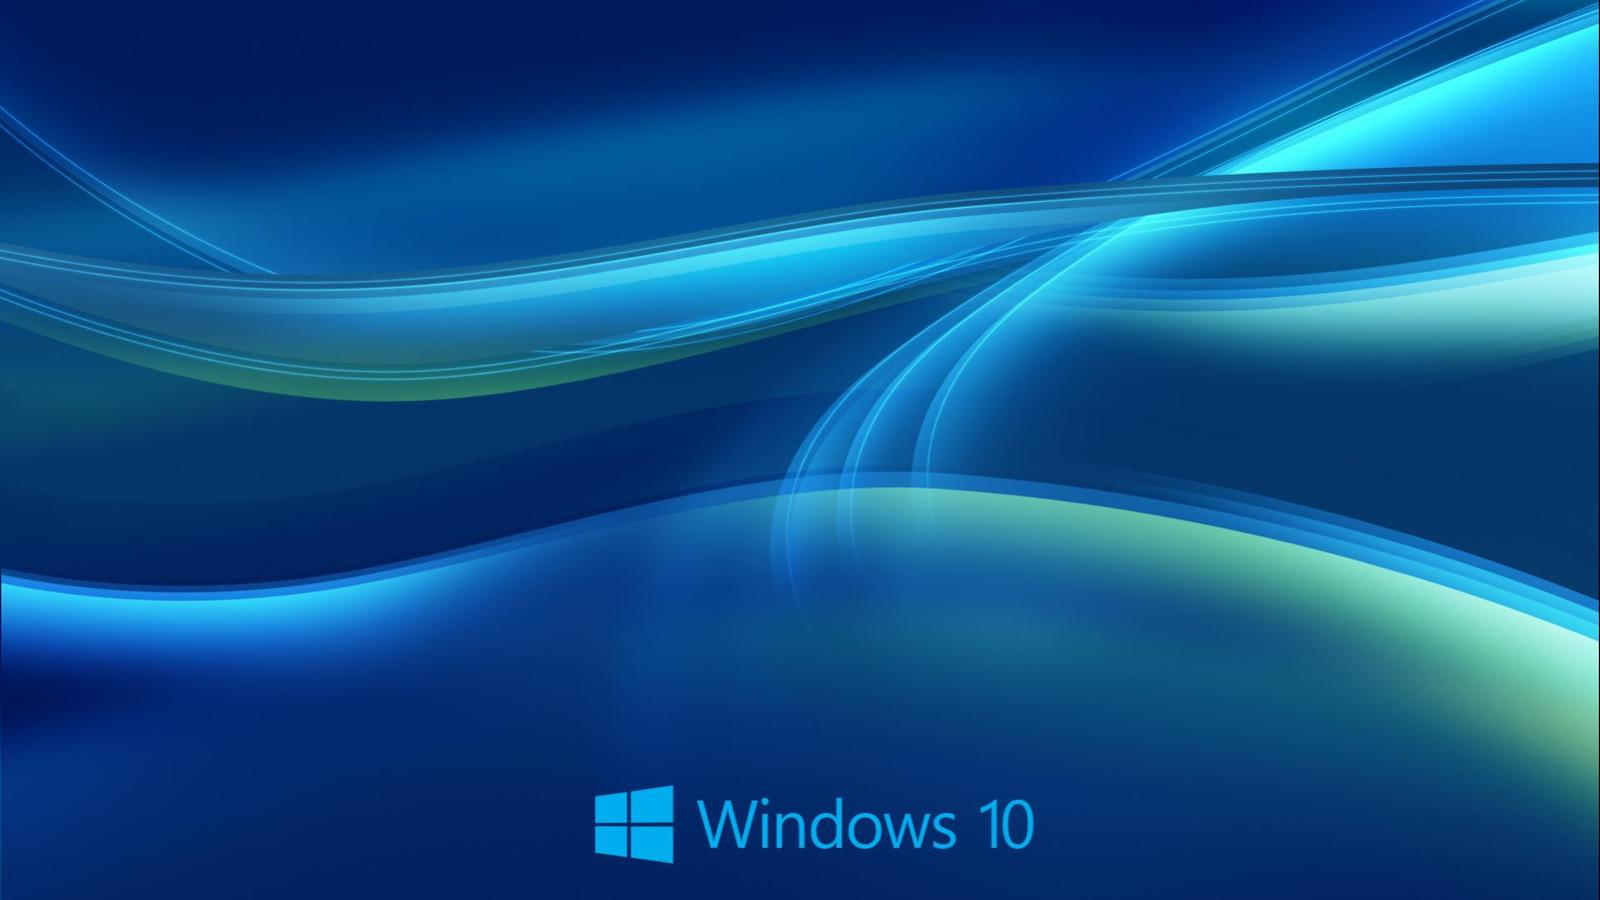 hd blue lines - beautiful windows 10 wallpaper wallpaper download